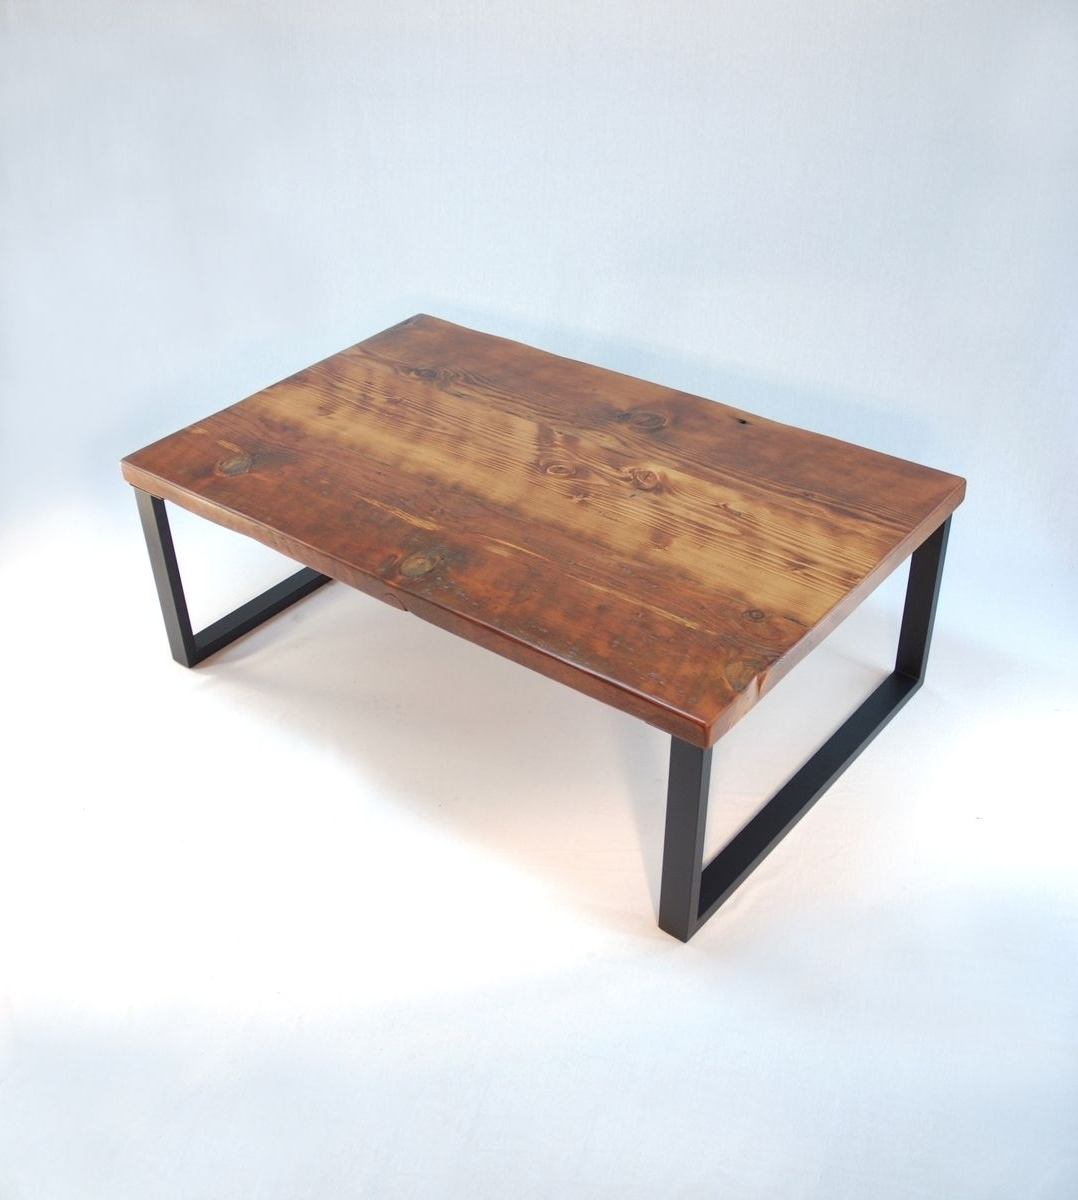 Widely Used Modern Rustic Coffee Tables In Home Design Ideas Stylish Coffee Table Kitchen Tables Modern Rustic (View 6 of 20)